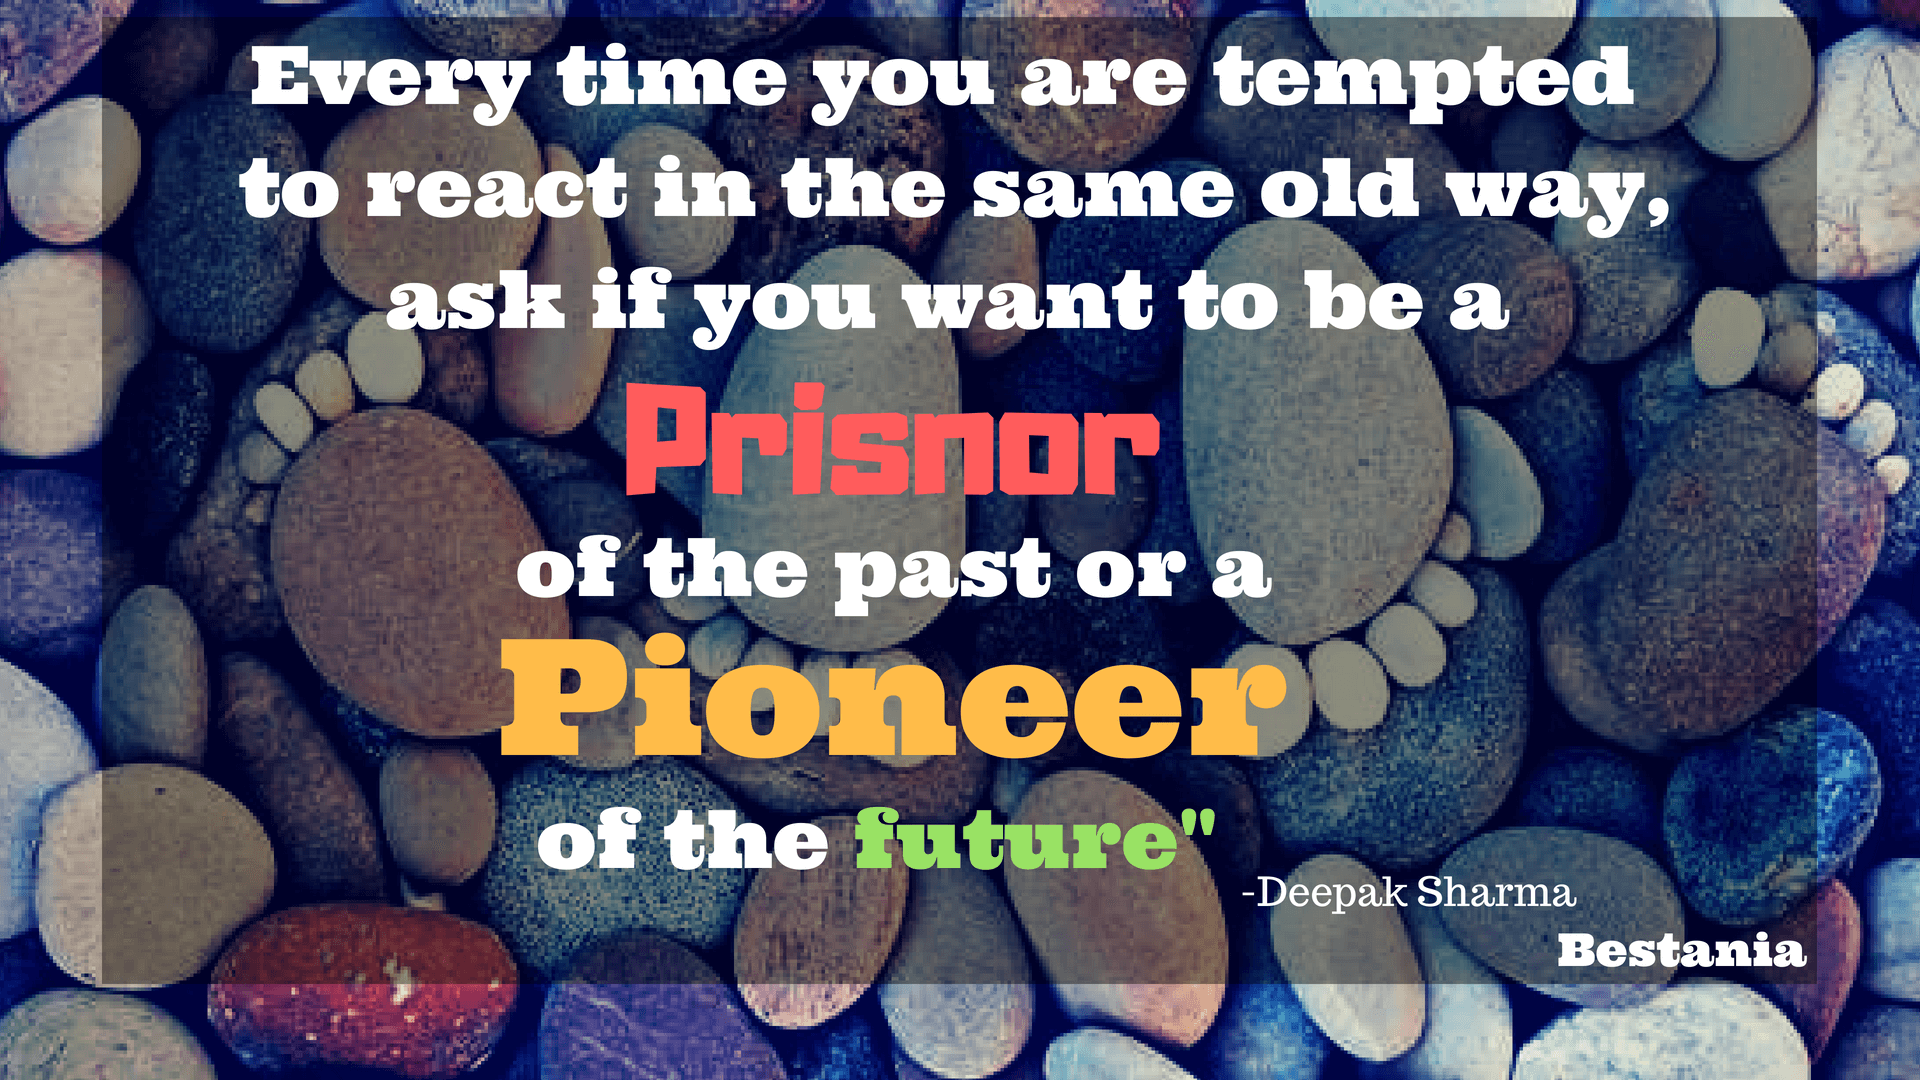 EVERY TIME YOU TEMPTED TO REACT IN THE SAME OLD WAY, ASK IF YOU WANT TO BE A PRISNOR OF THE PAST OR A PIONEER IF THE FUTURE. – DEEPAK CHOPRA